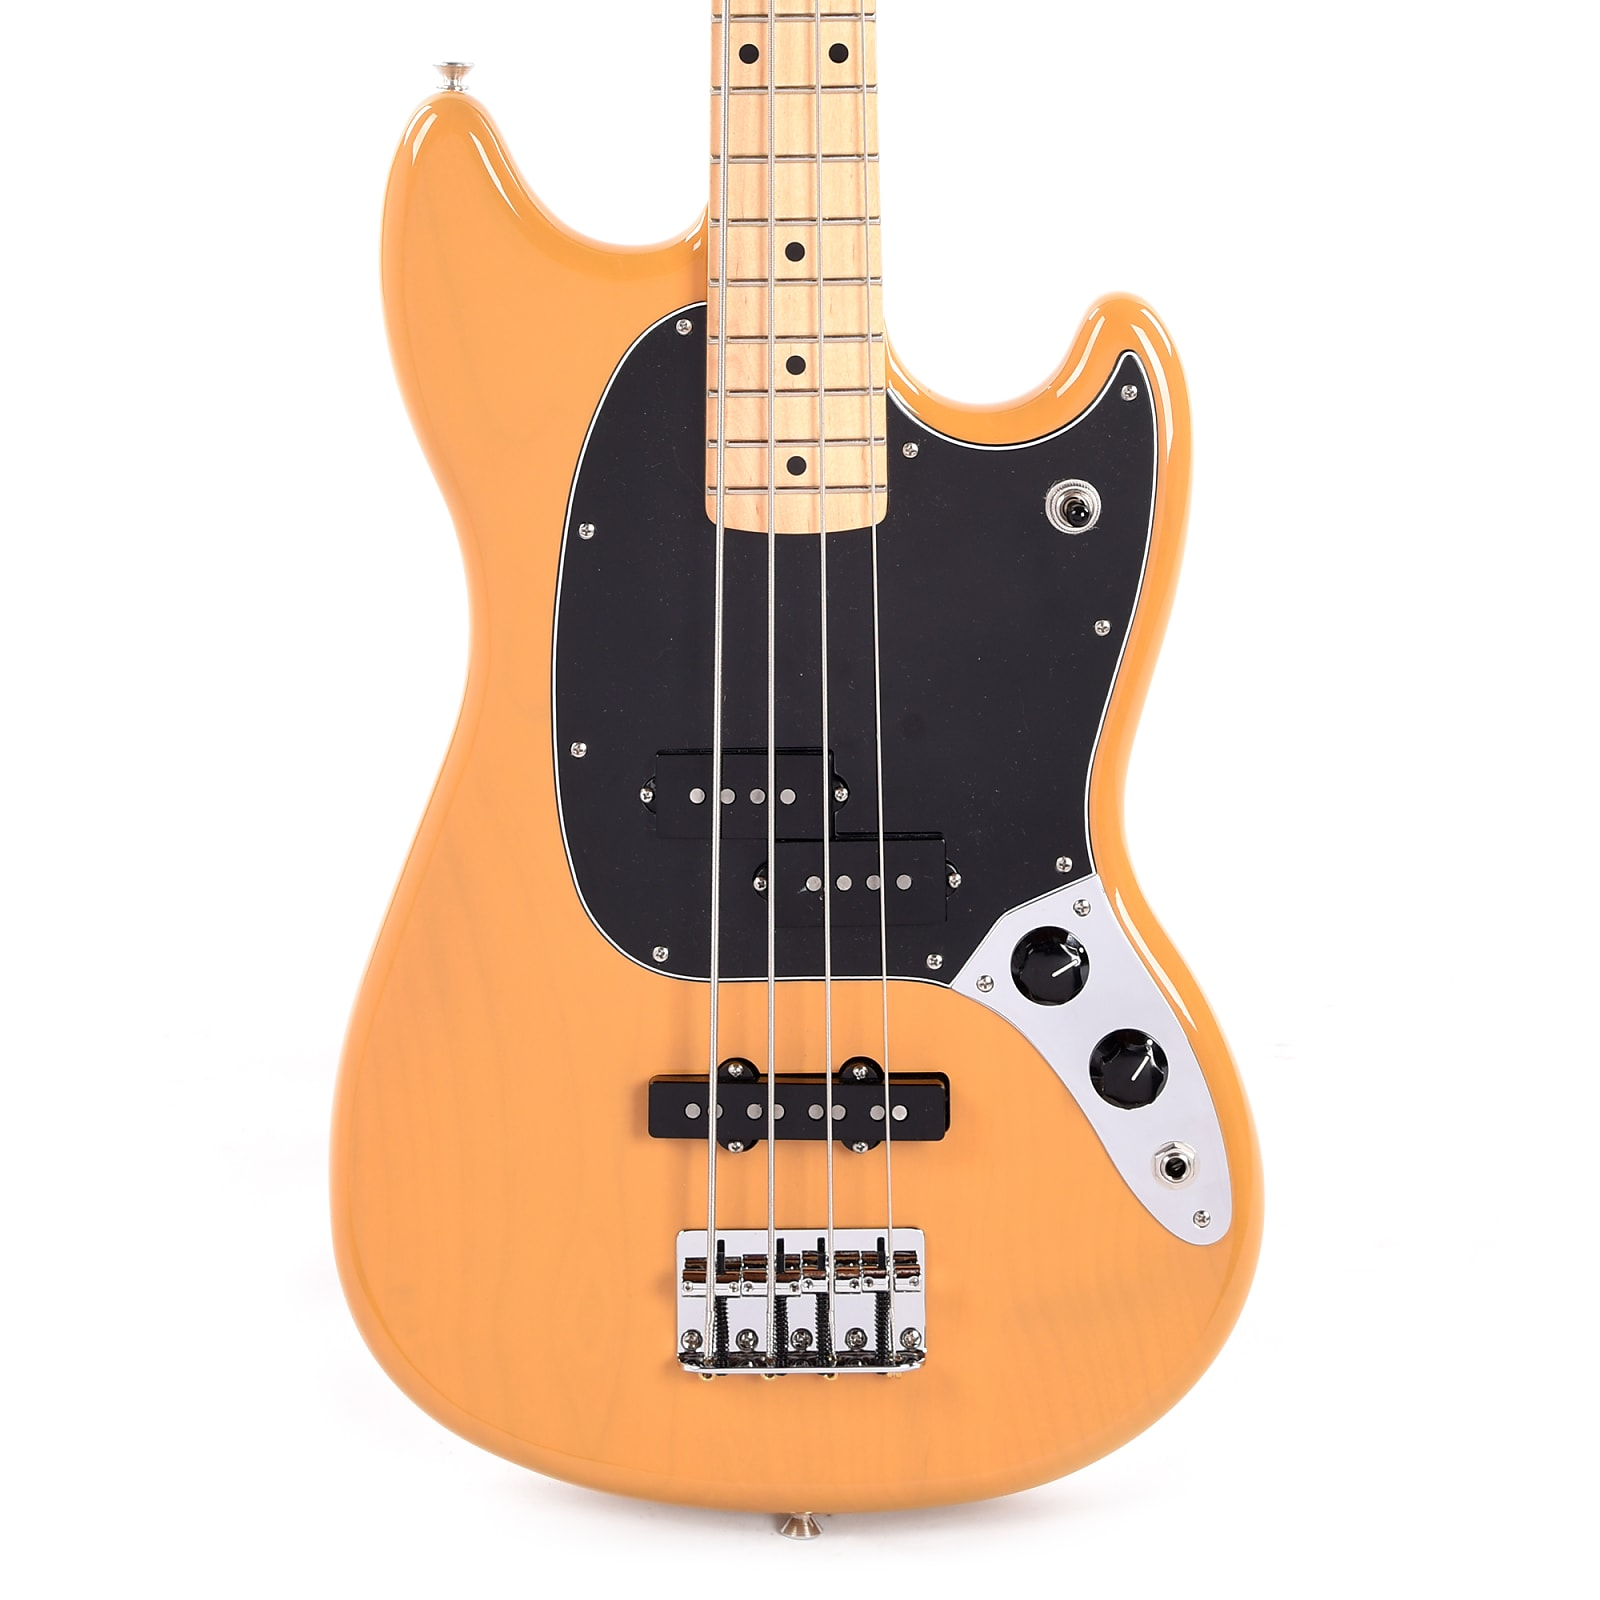 Fender Offset Series Mustang Bass PJ Butterscotch Blonde w/3-Ply Black Pickguard (CME Exclusive)